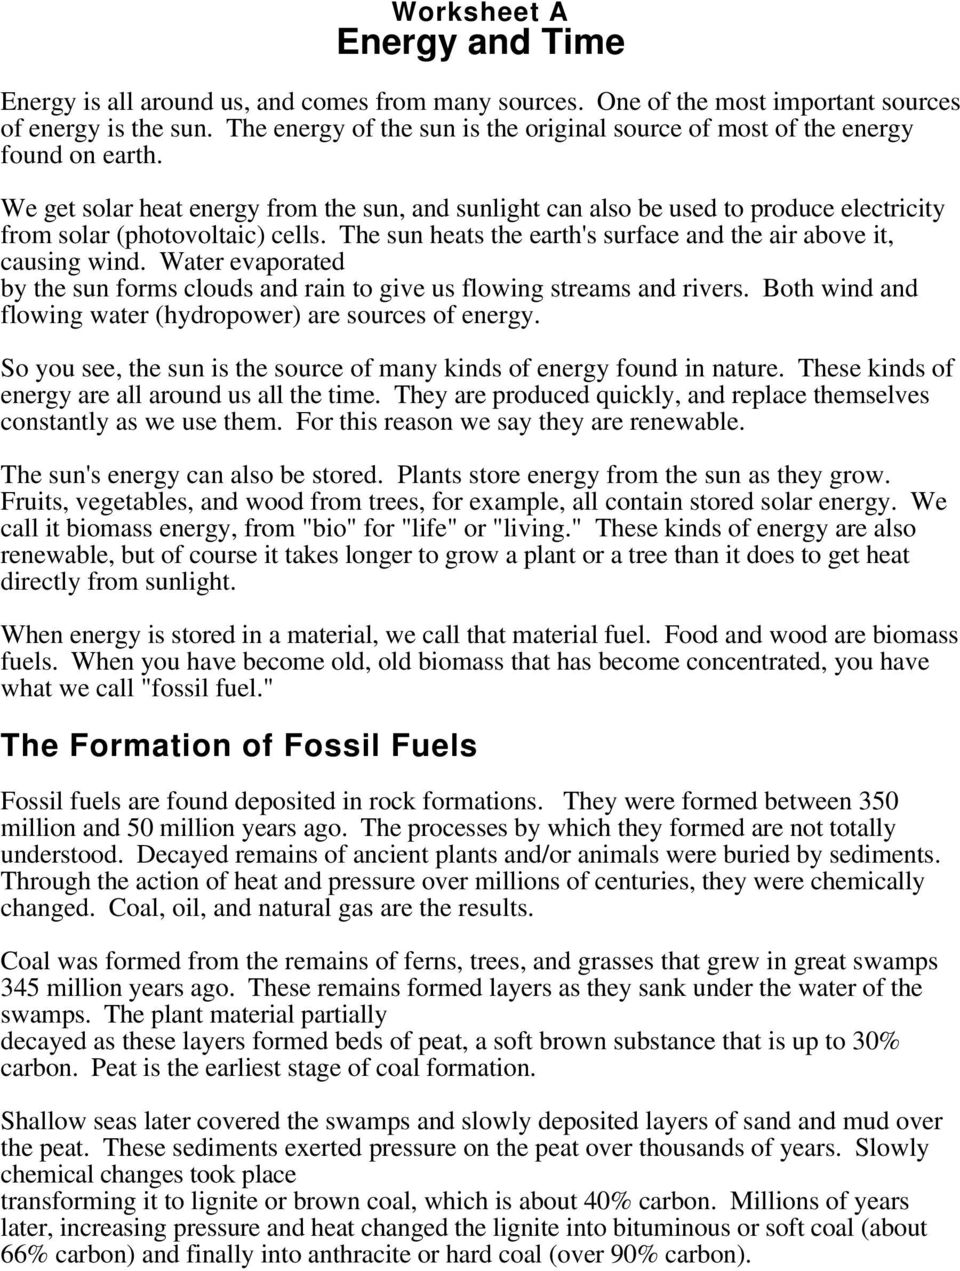 The Formation of Fossil Fuels - PDF